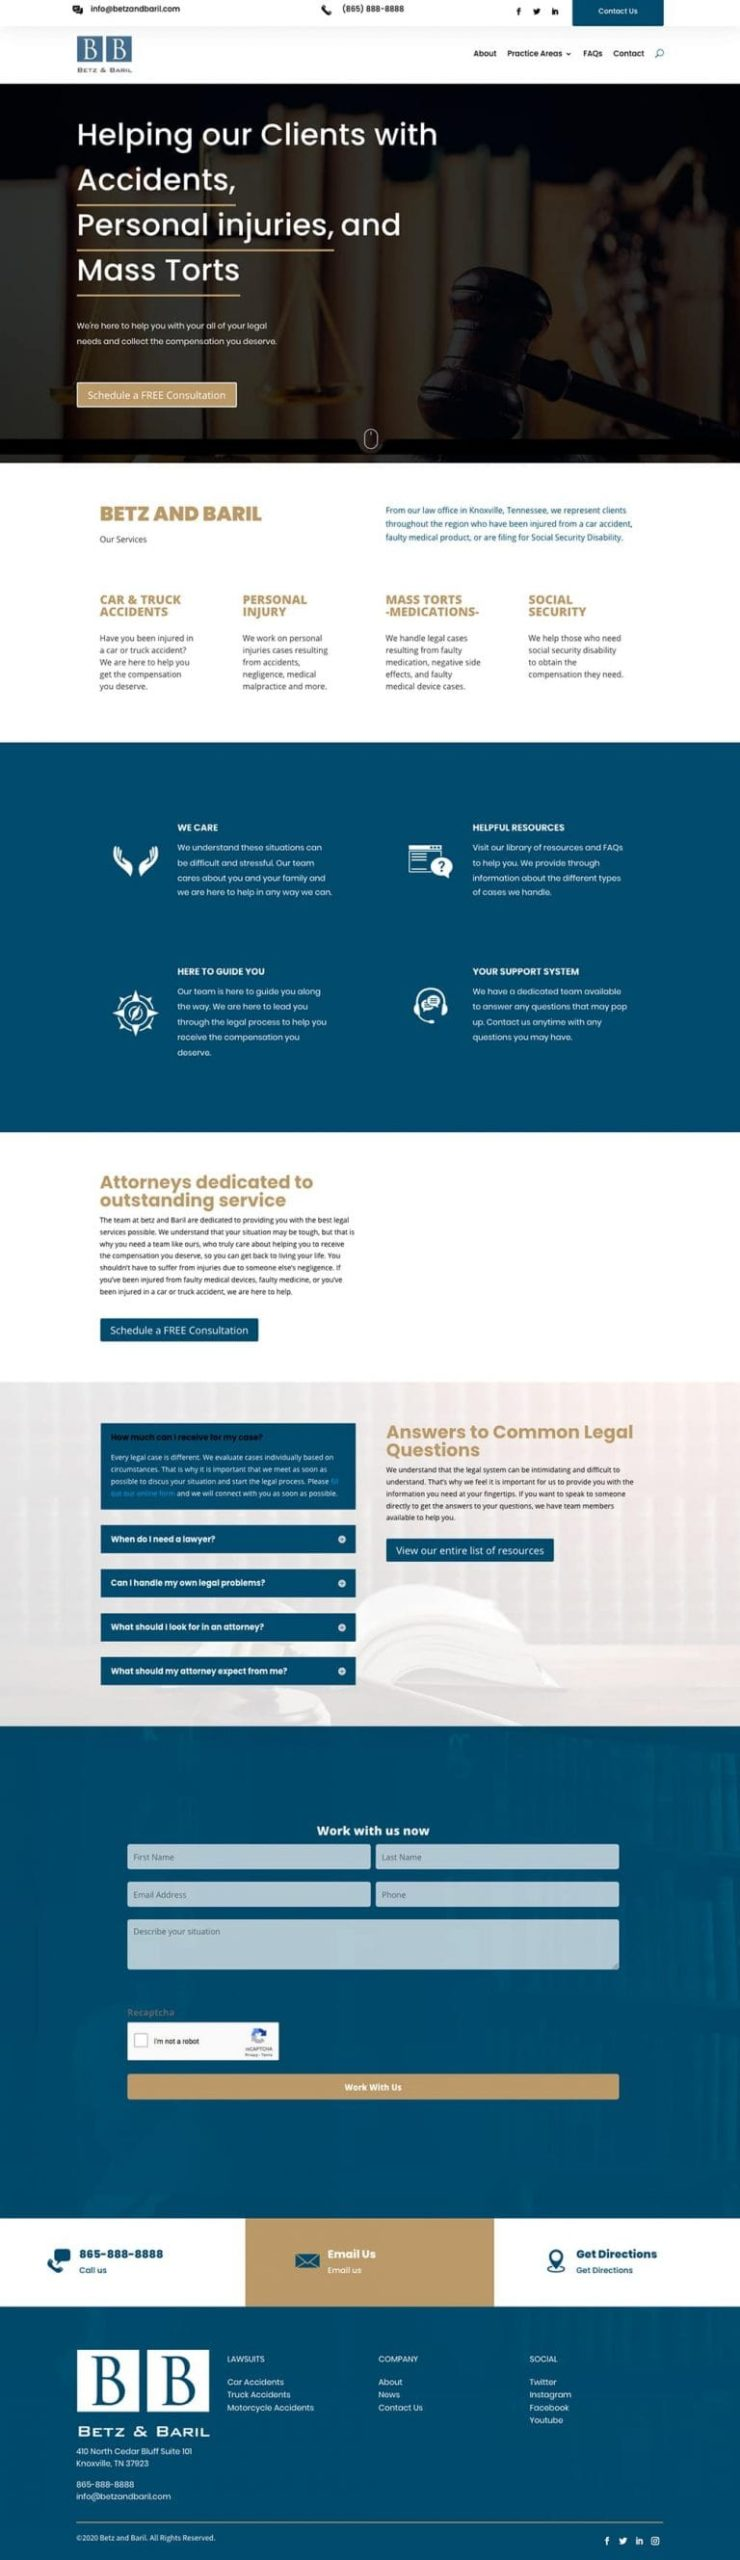 betz and baril law firm website 768x2657 2 scaled